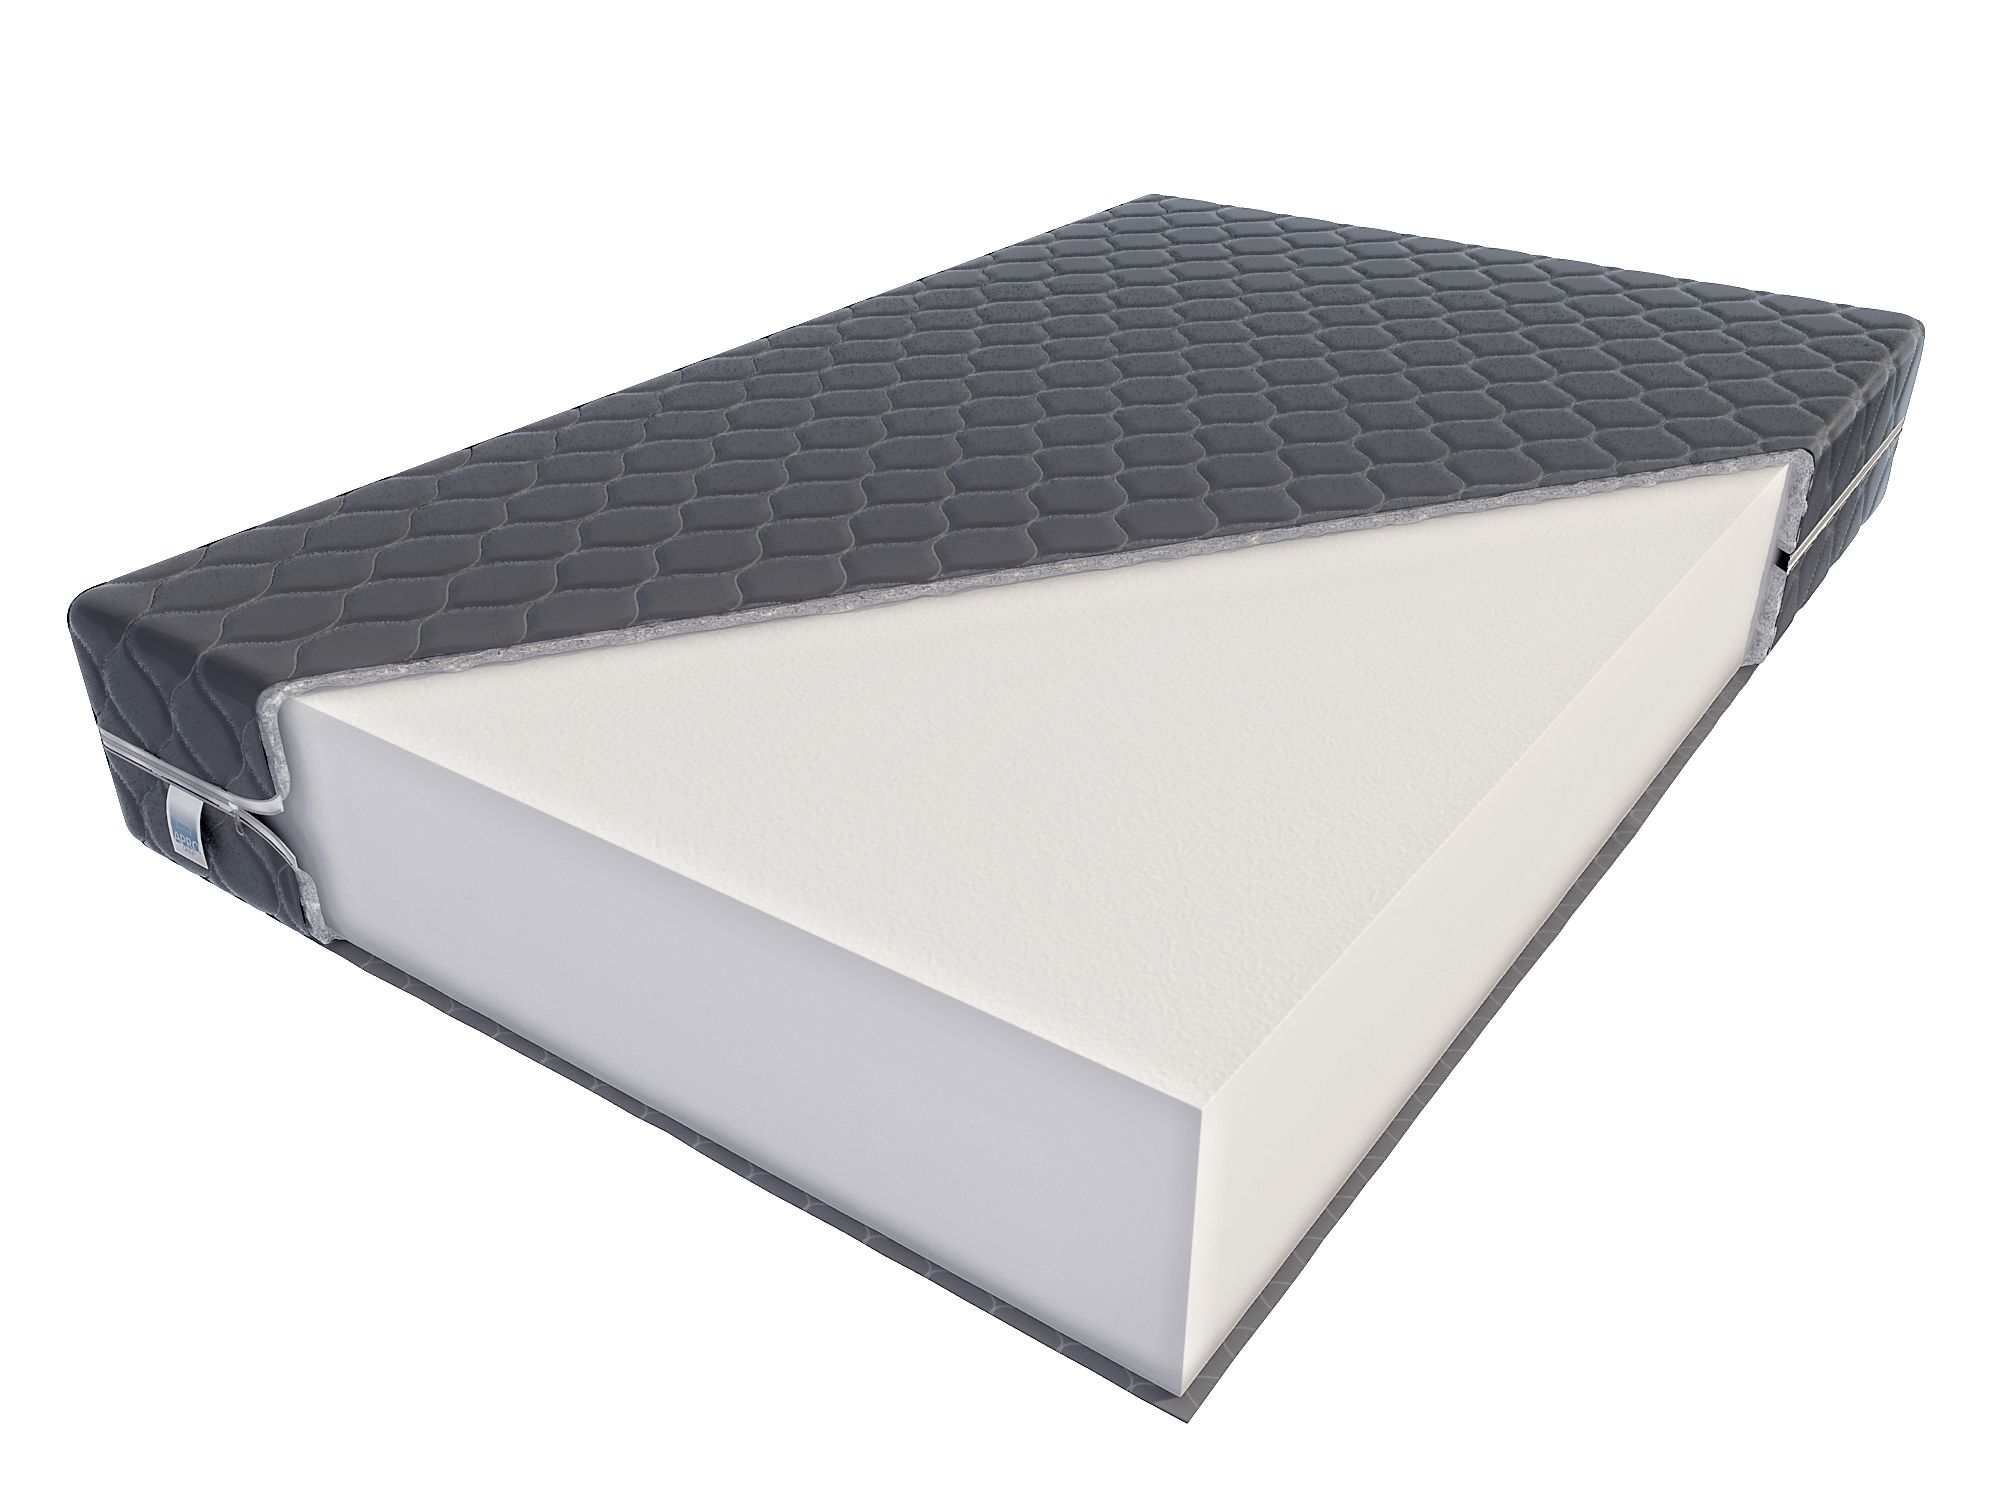 Santorini Mattress Was Made Of High Quality Foam Which Is Very Durable And Allows You To Have A Good Sleep It Is A Foam Mattress Have A Good Sleep Mattress